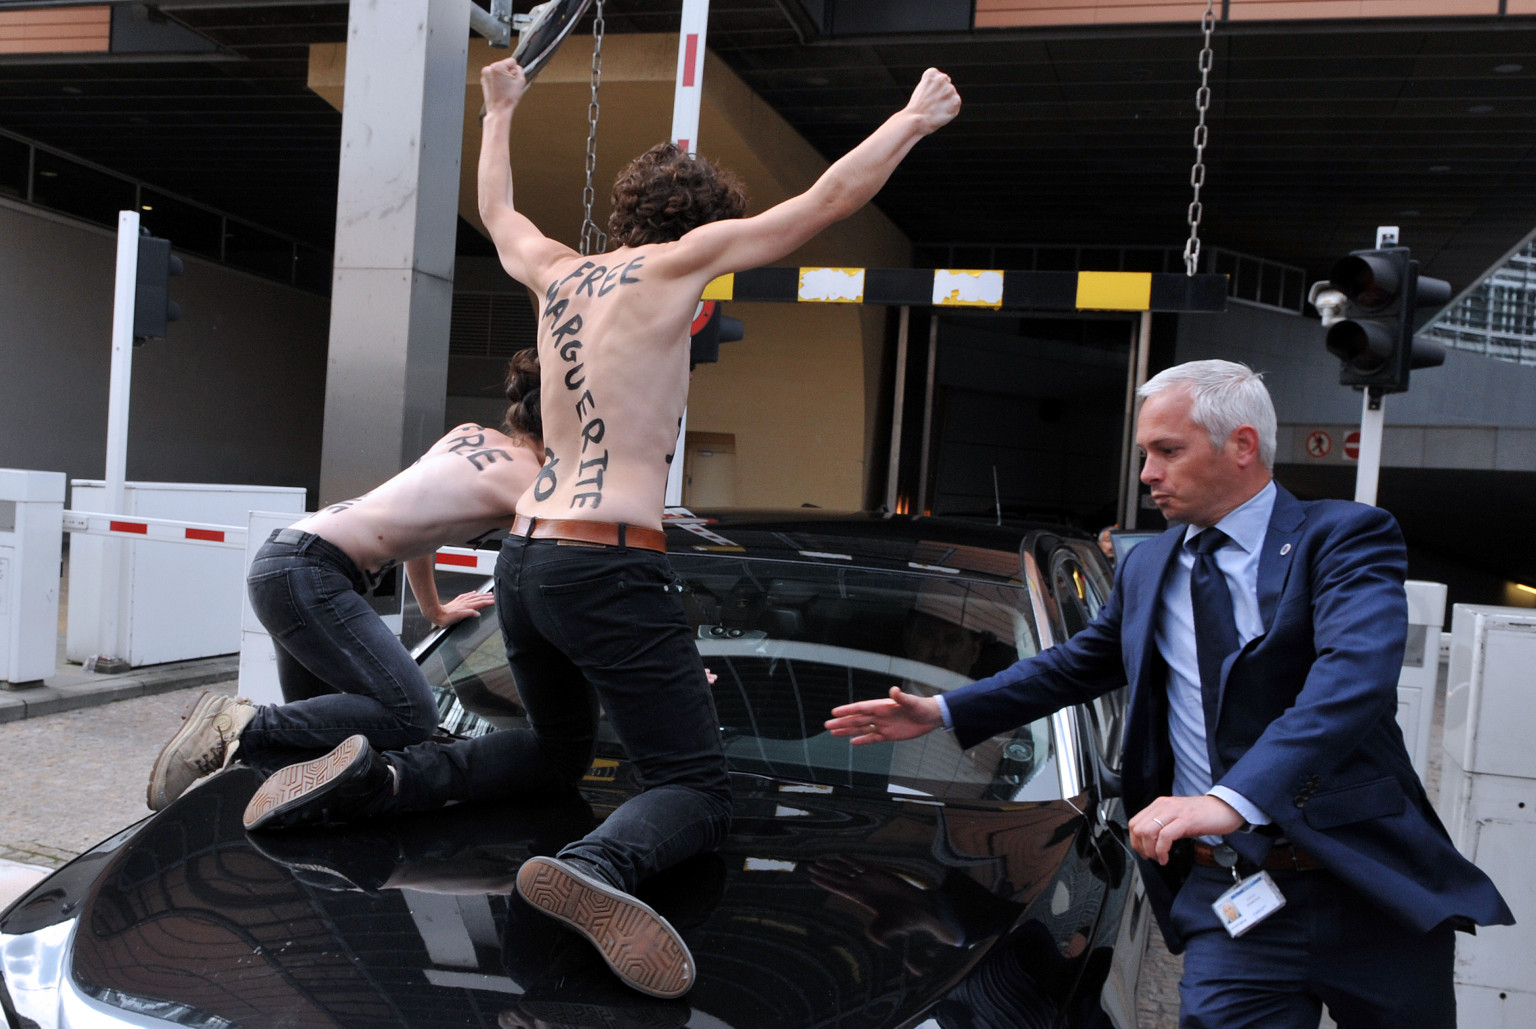 femen topless protesters jump on tunisian pm ali larayedh 39 s car in brussels huffpost. Black Bedroom Furniture Sets. Home Design Ideas